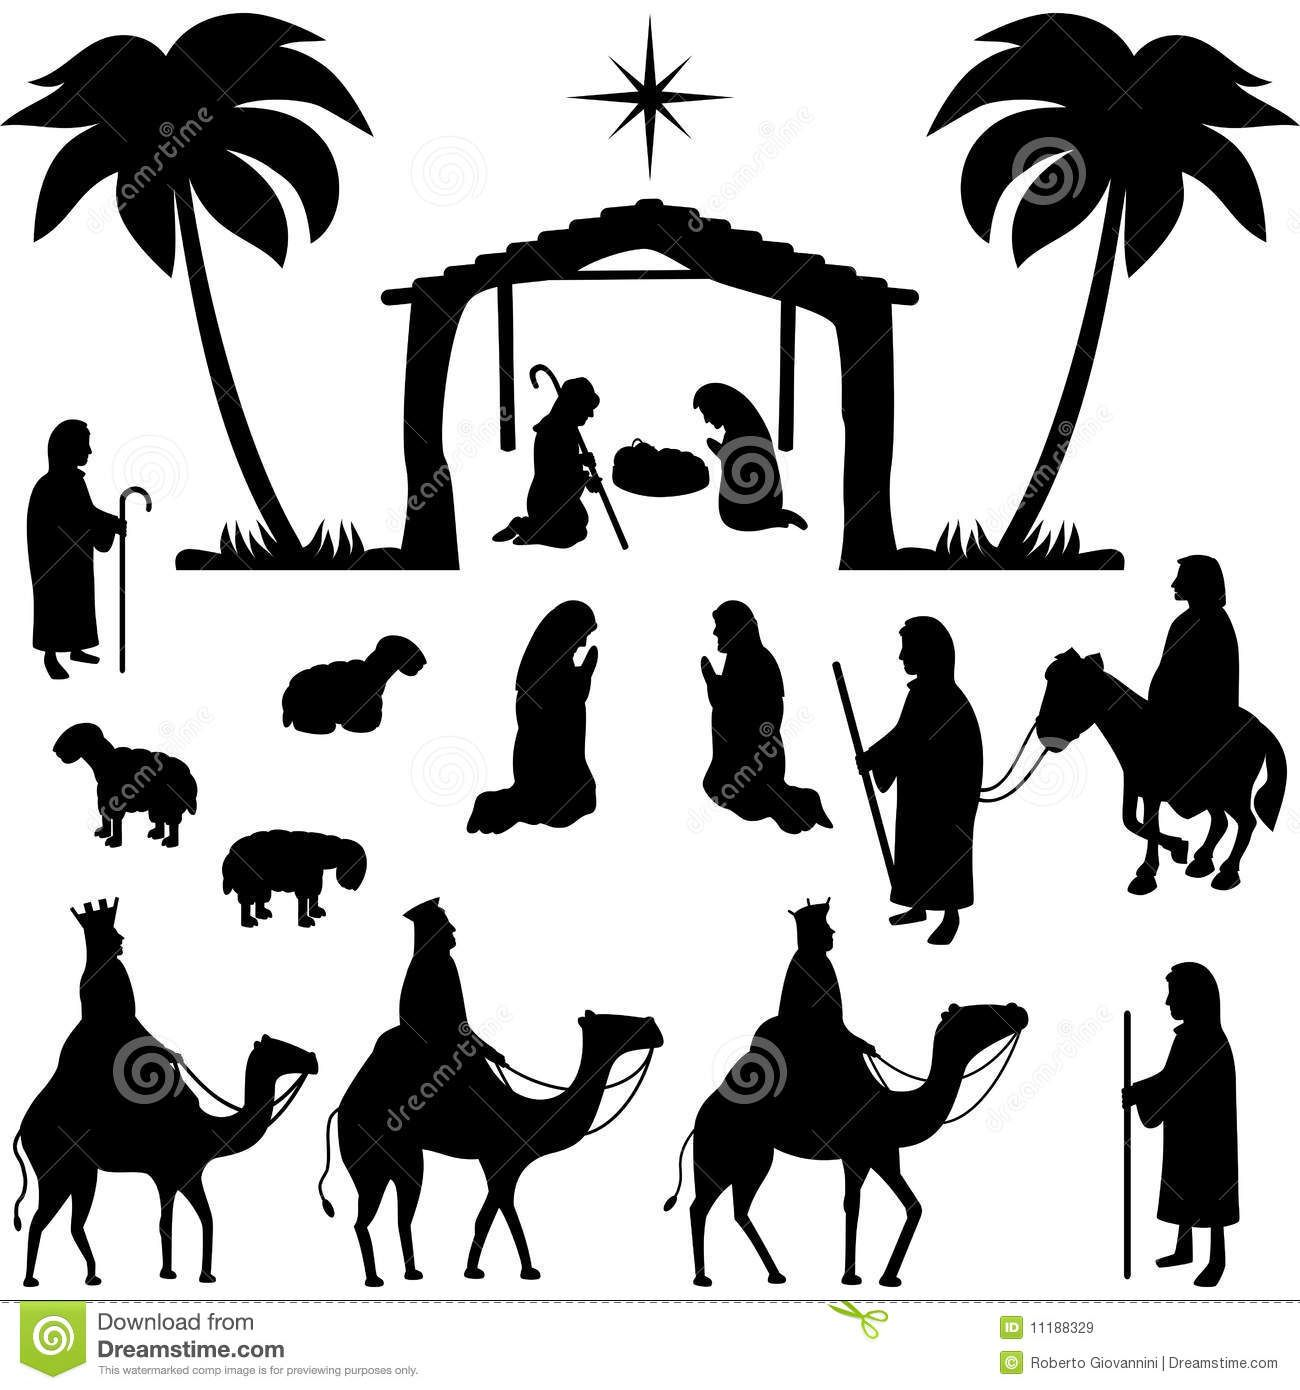 Nativity Silhouettes Collection Download From Over 27